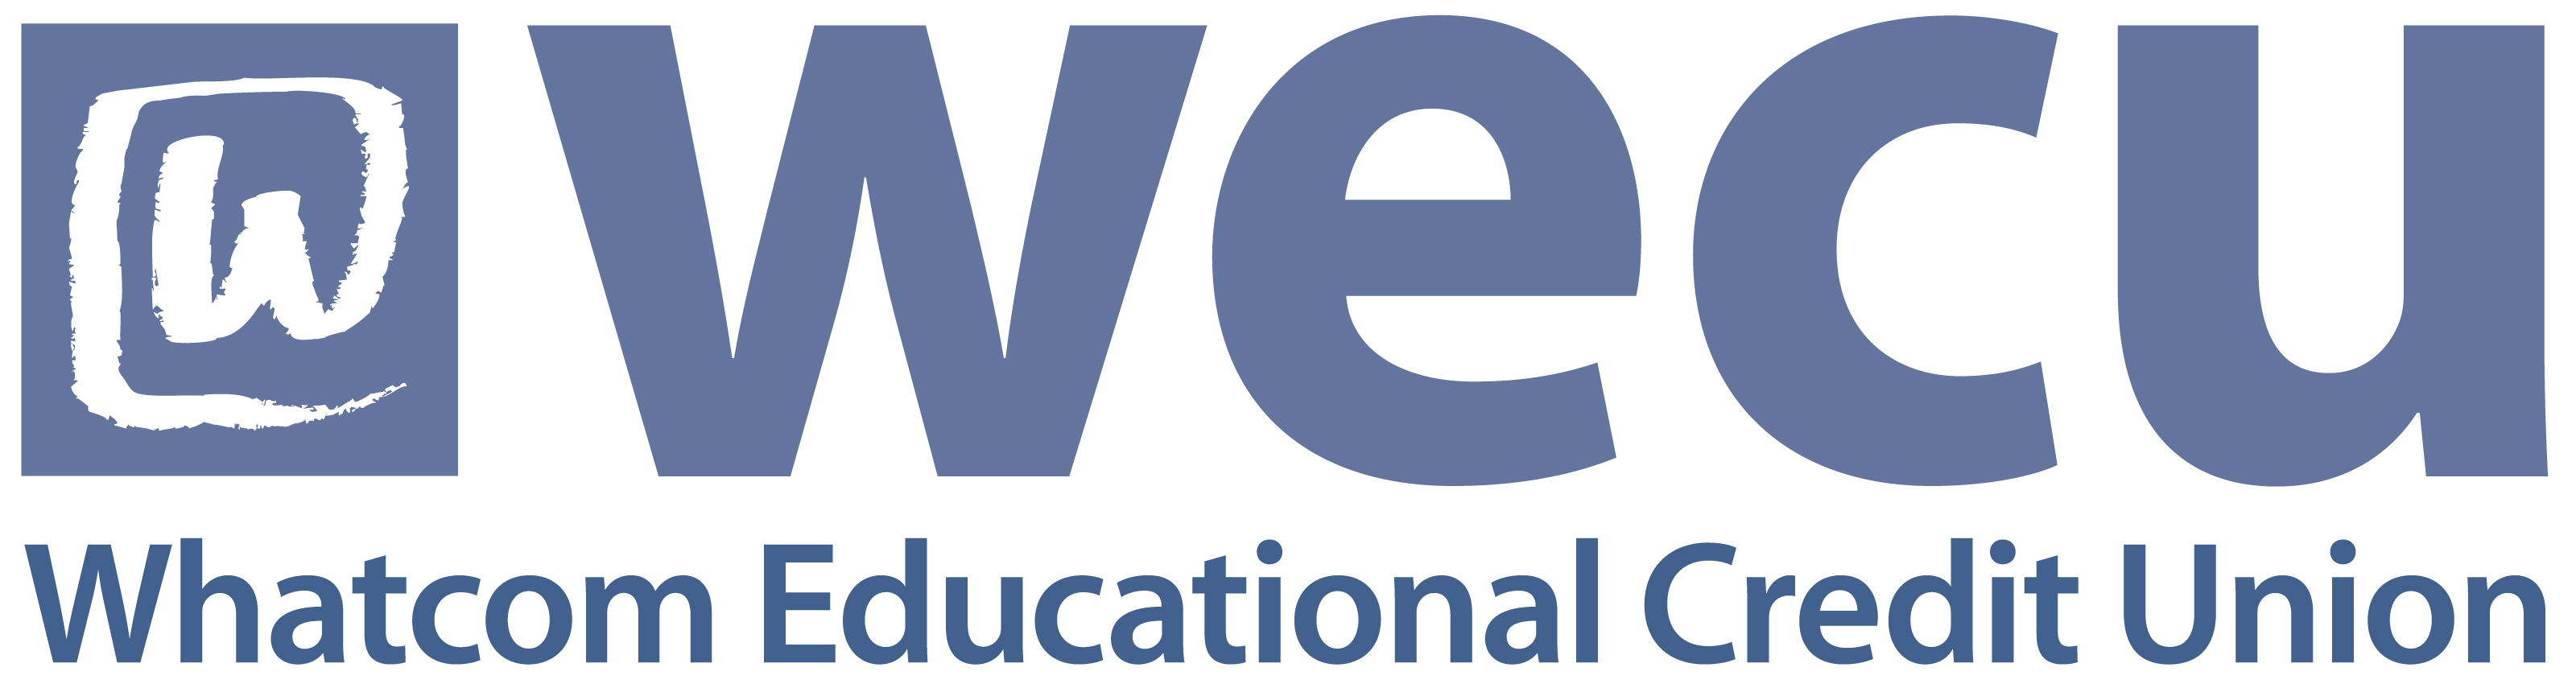 Whatcom Education Cred Union             Logo